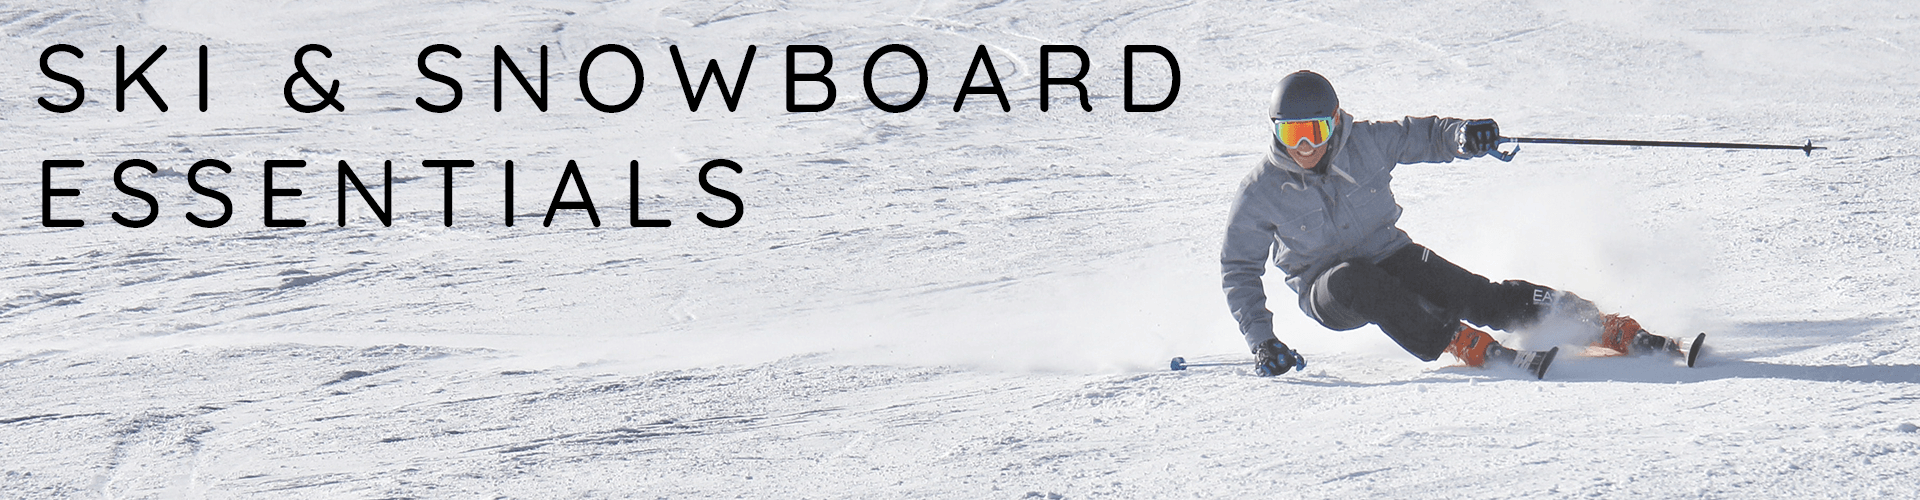 Ski and Snowboard Essentials